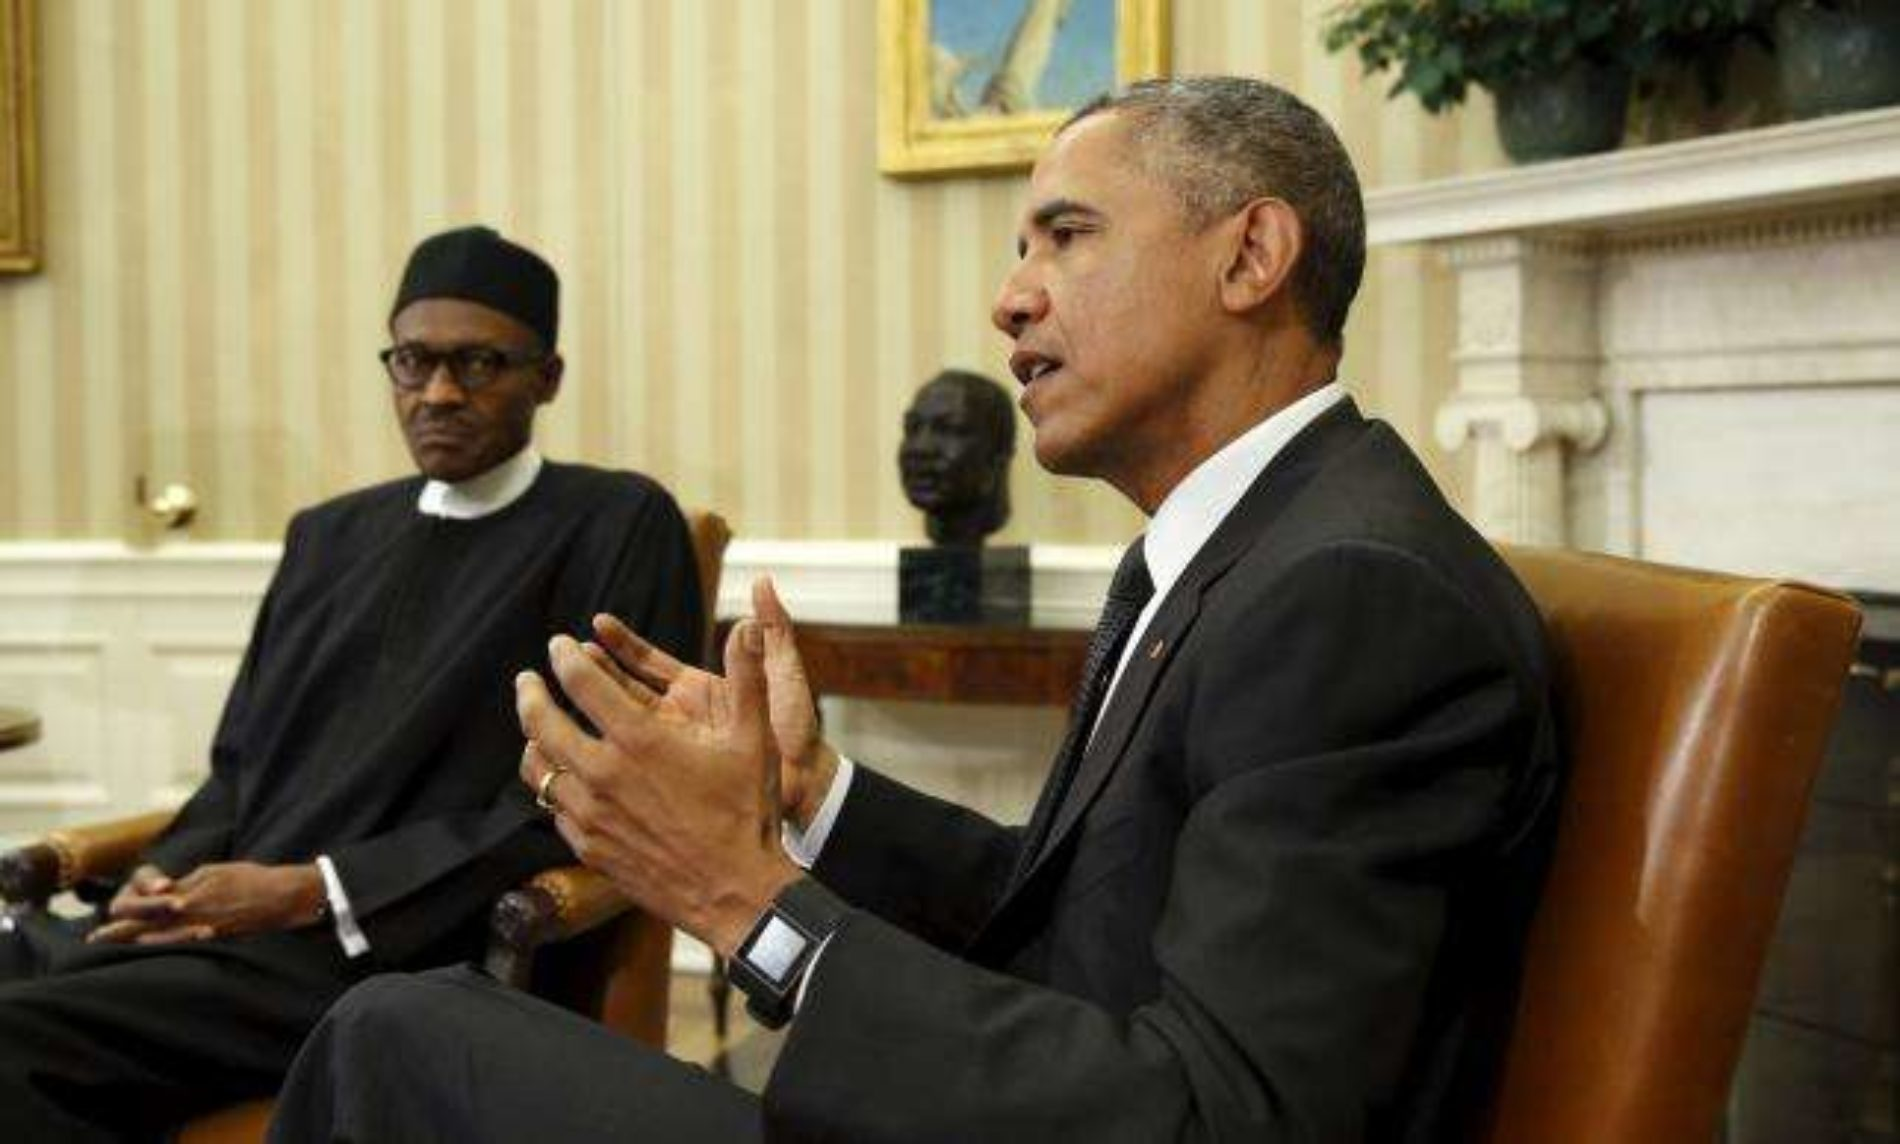 'US Government has aided and abetted Boko Haram.' – President Buhari